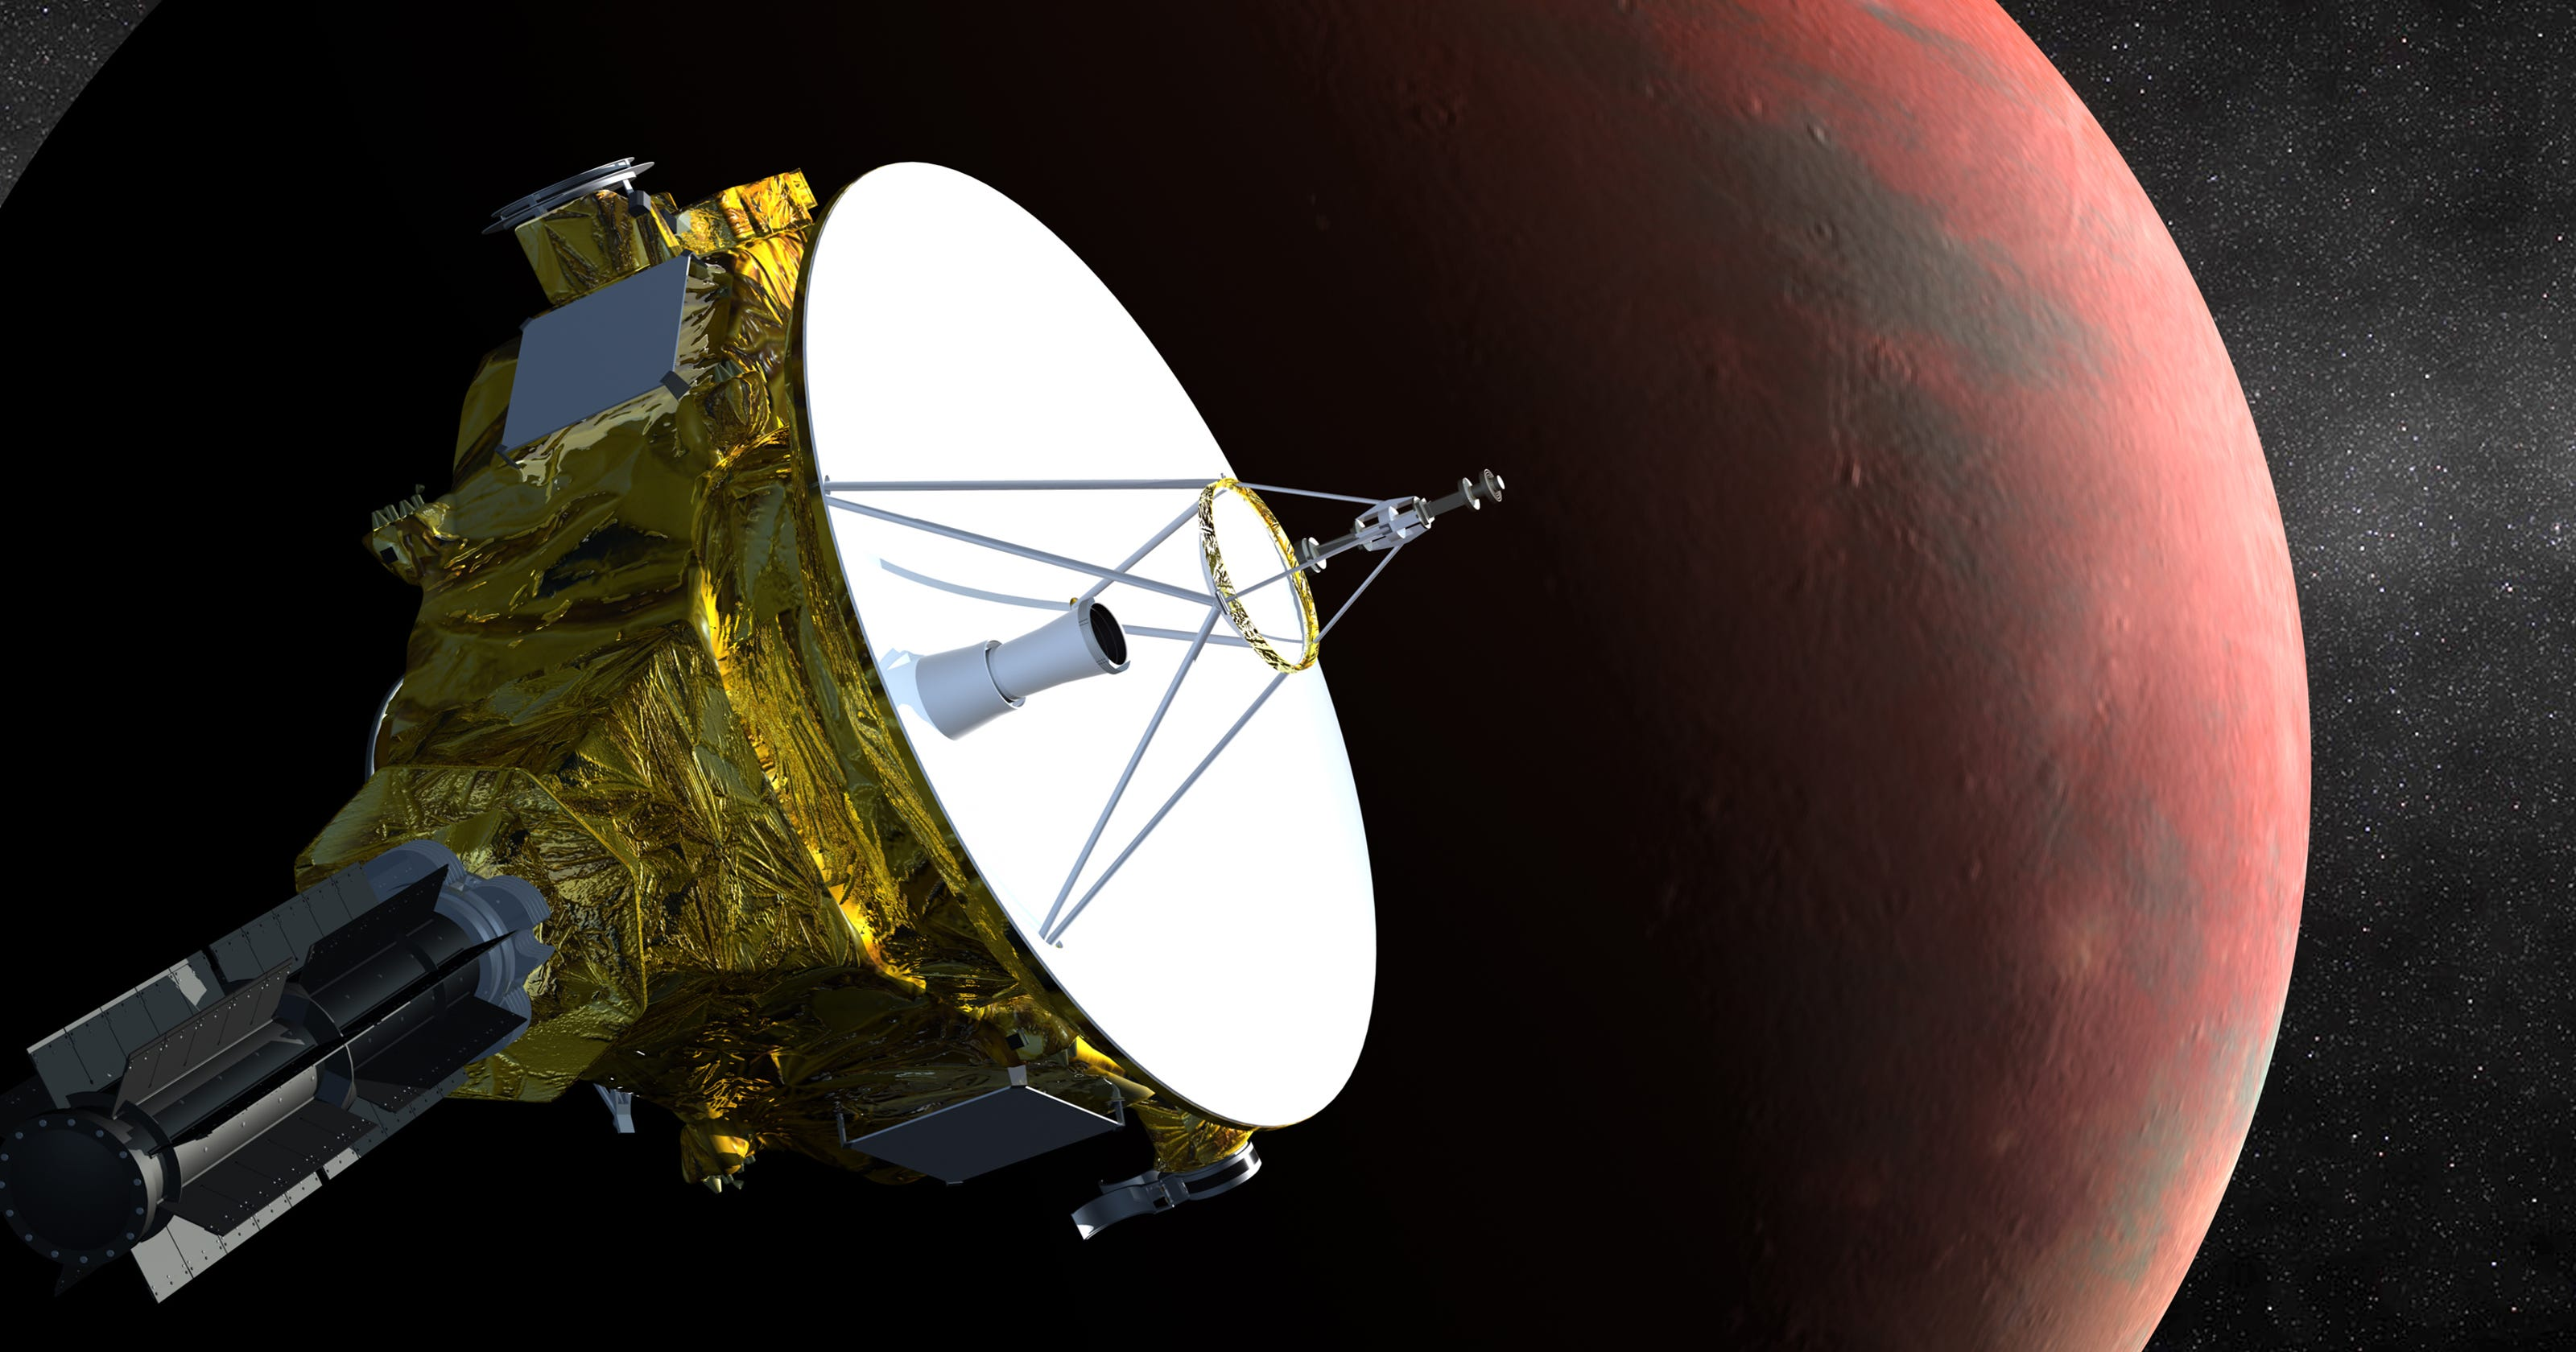 newest space probe - HD1600×900